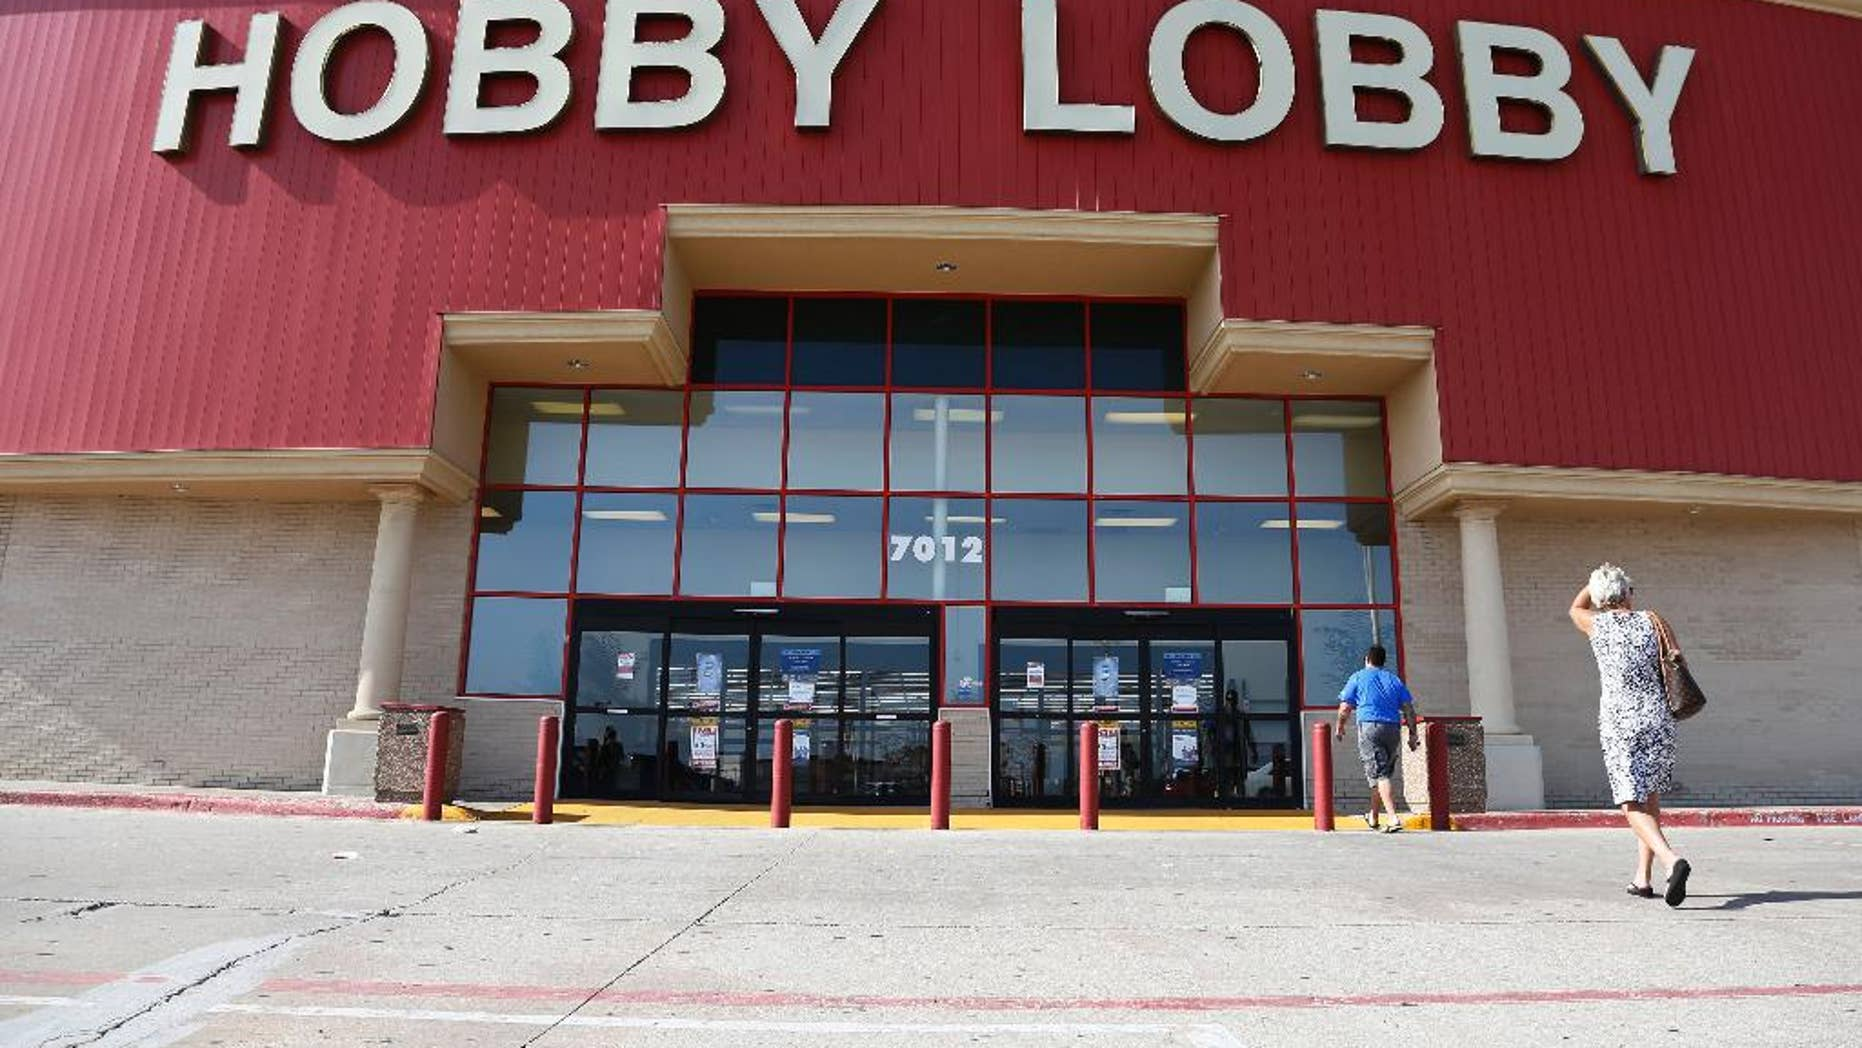 Customers walk to a Hobby Lobby store in Oklahoma City, Monday, June 30, 2014. The Supreme Court ruled Monday that employers can hold  religious objections that allow them to opt out of the new health law requirement that they cover contraceptives for women. The Hobby Lobby chain of arts-and-crafts stores is by far the largest employer of any company that has gone to court to fight the birth control provision. (AP Photo/Sue Ogrocki)